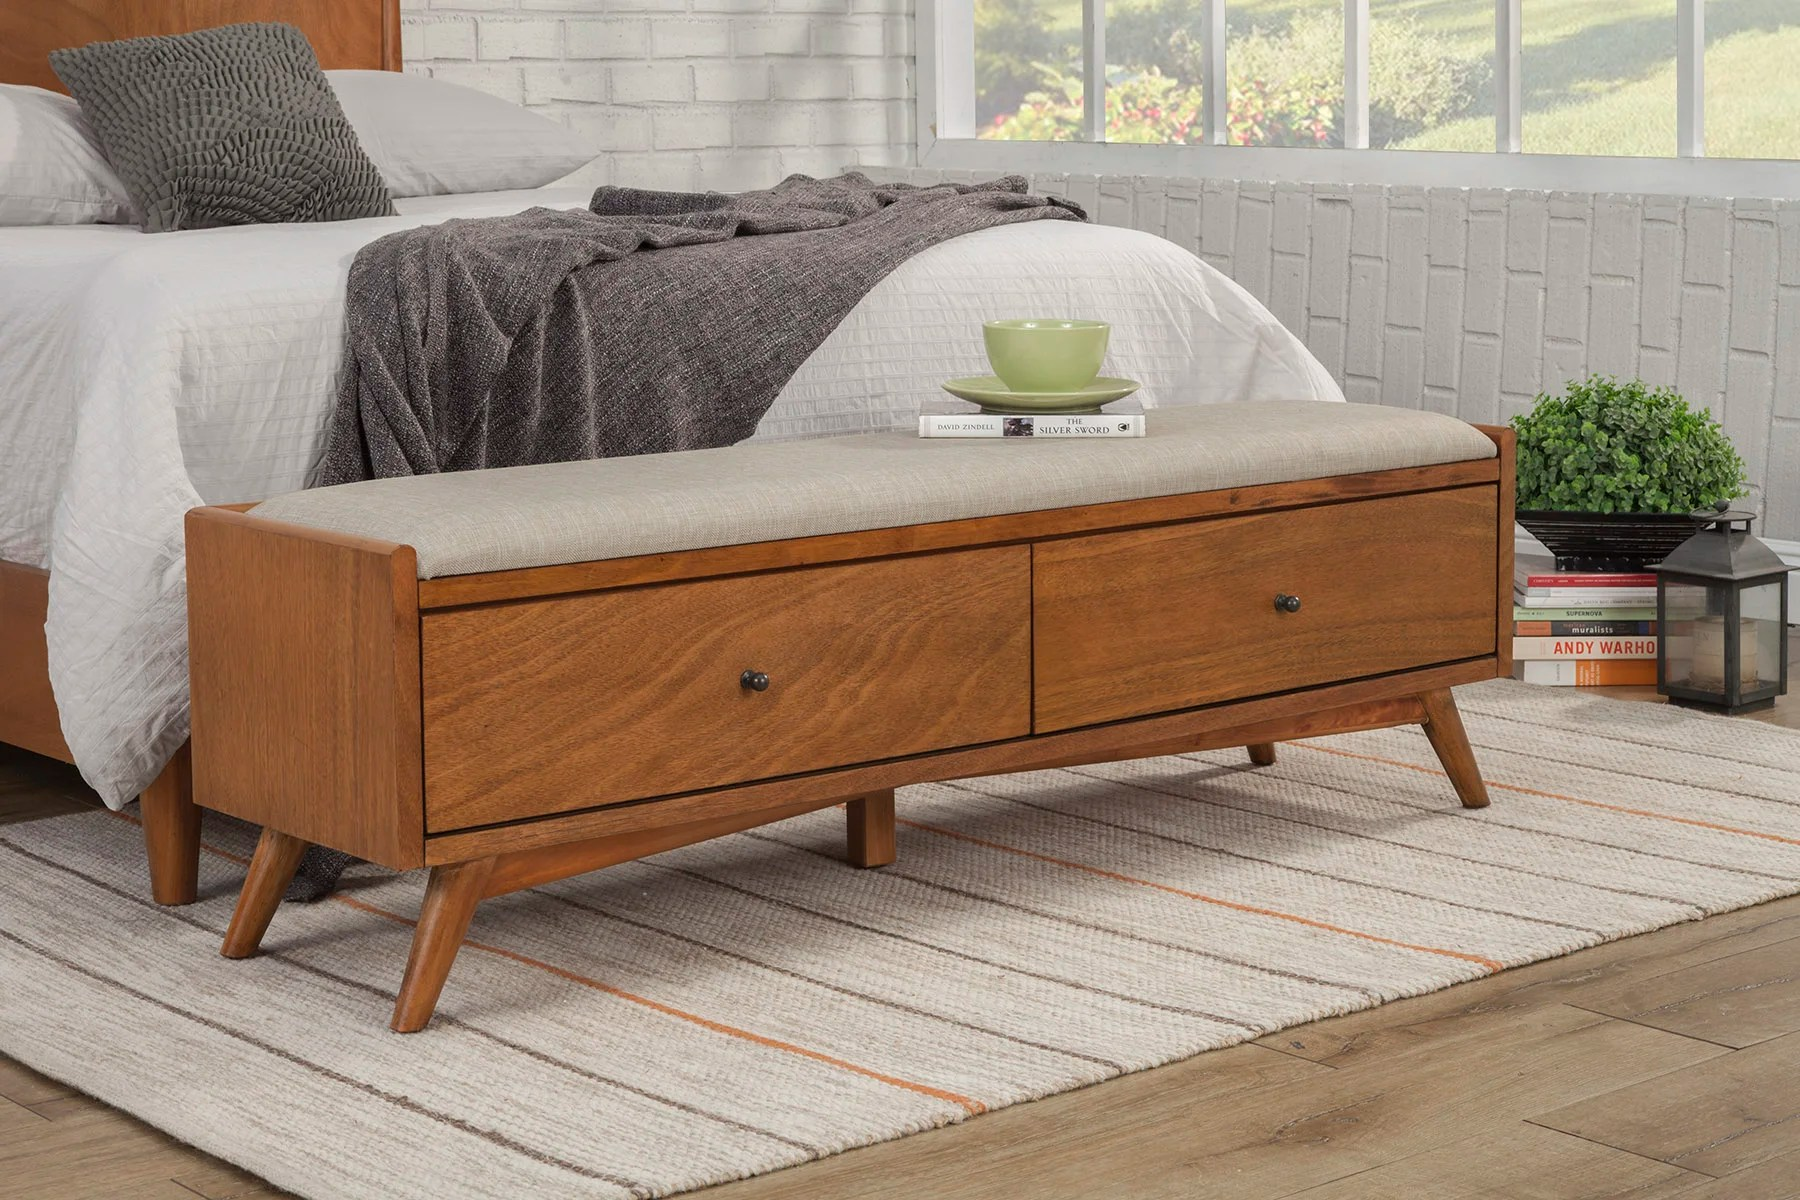 An elegant rustic style bench of oak wood with a natural lacquer finish. storage benchdining benches joss main